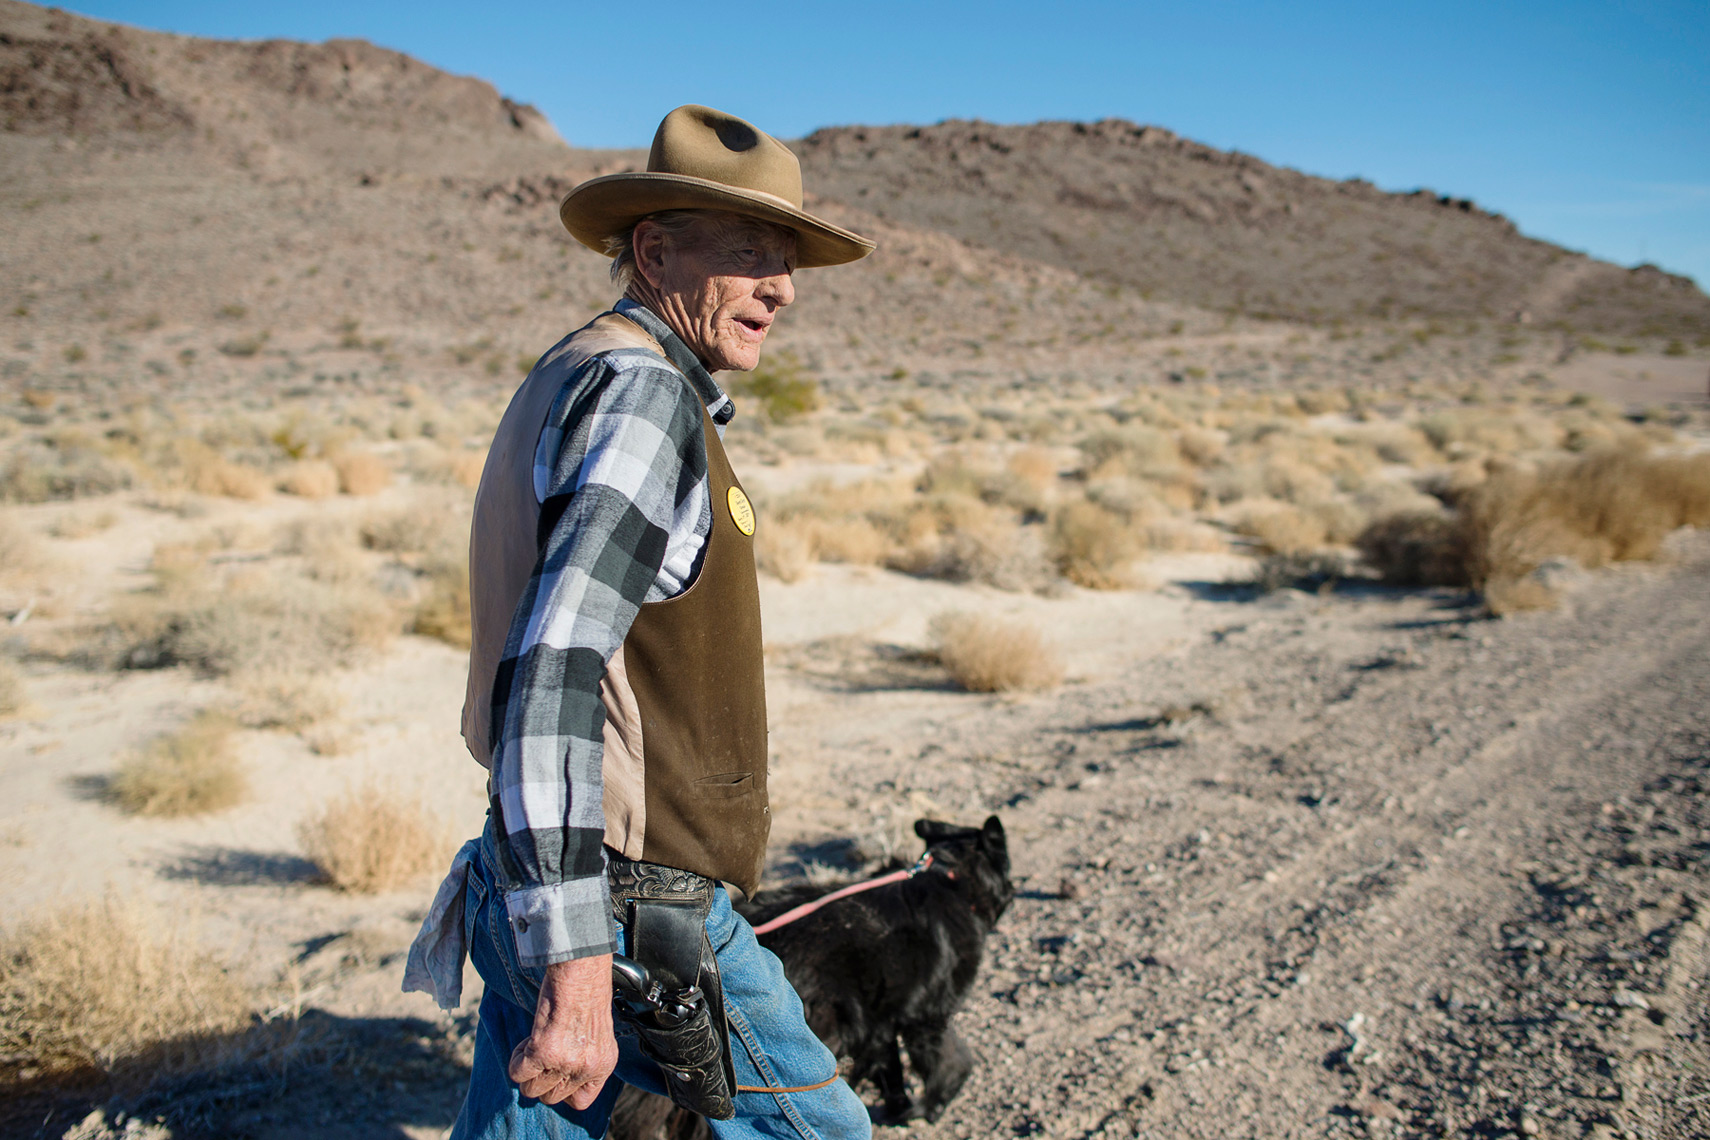 Rugged cowboy walking across the desert with his dog